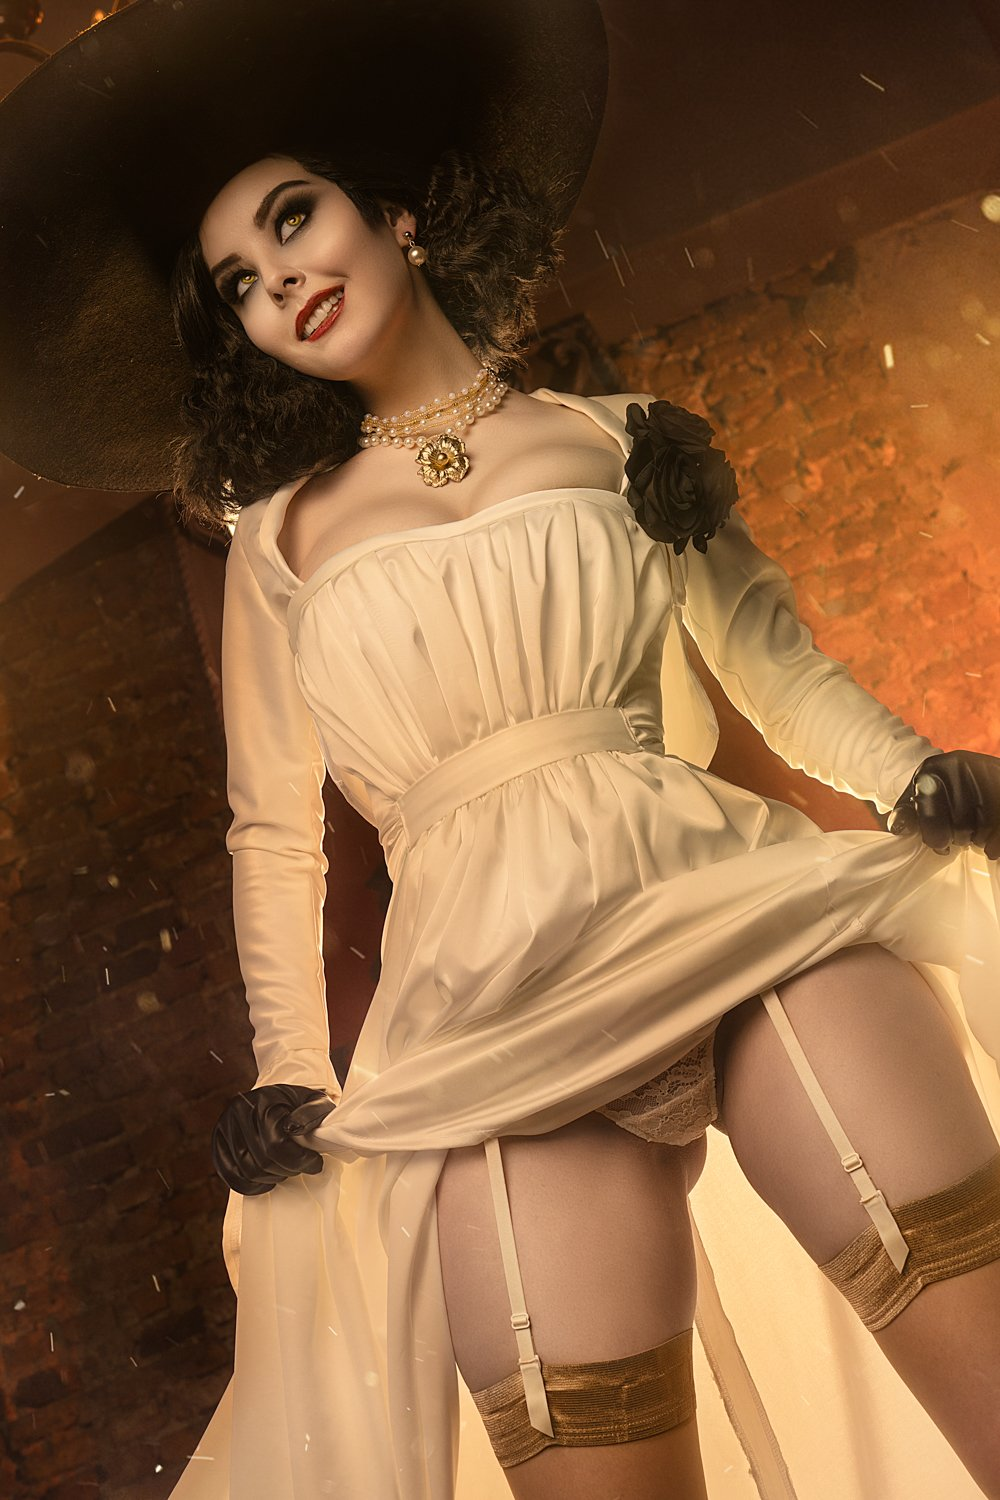 125657-cosplay_lady_dimitrescu_by_dishar